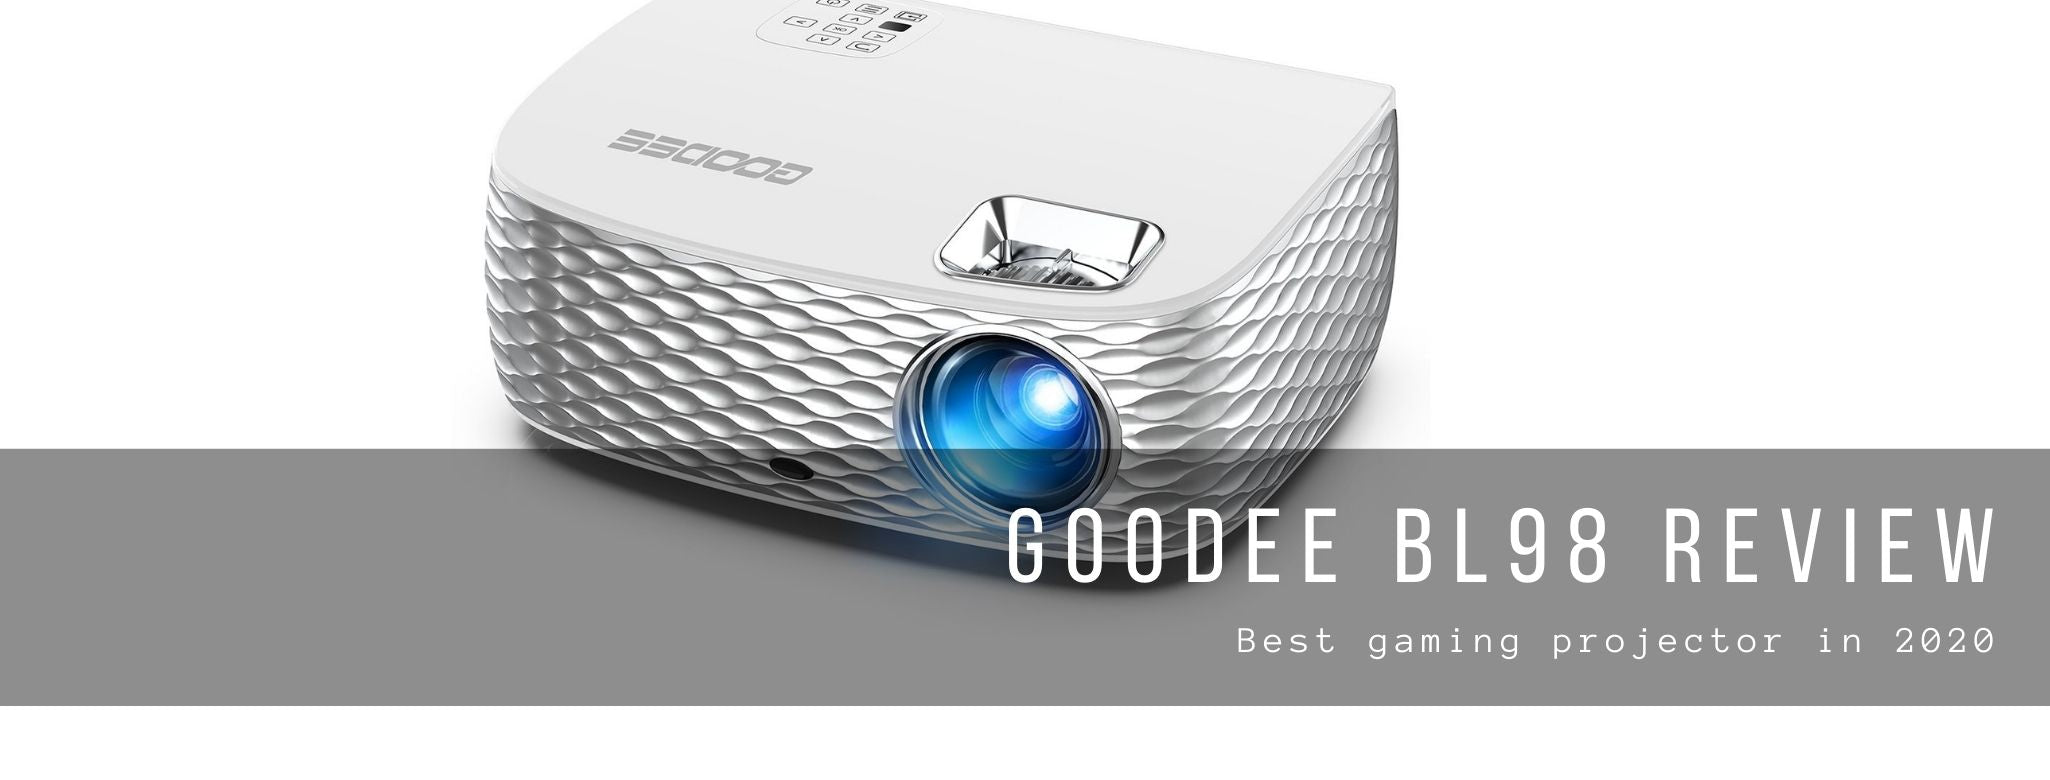 Goodee BL98 Review – Best gaming projector in 2020